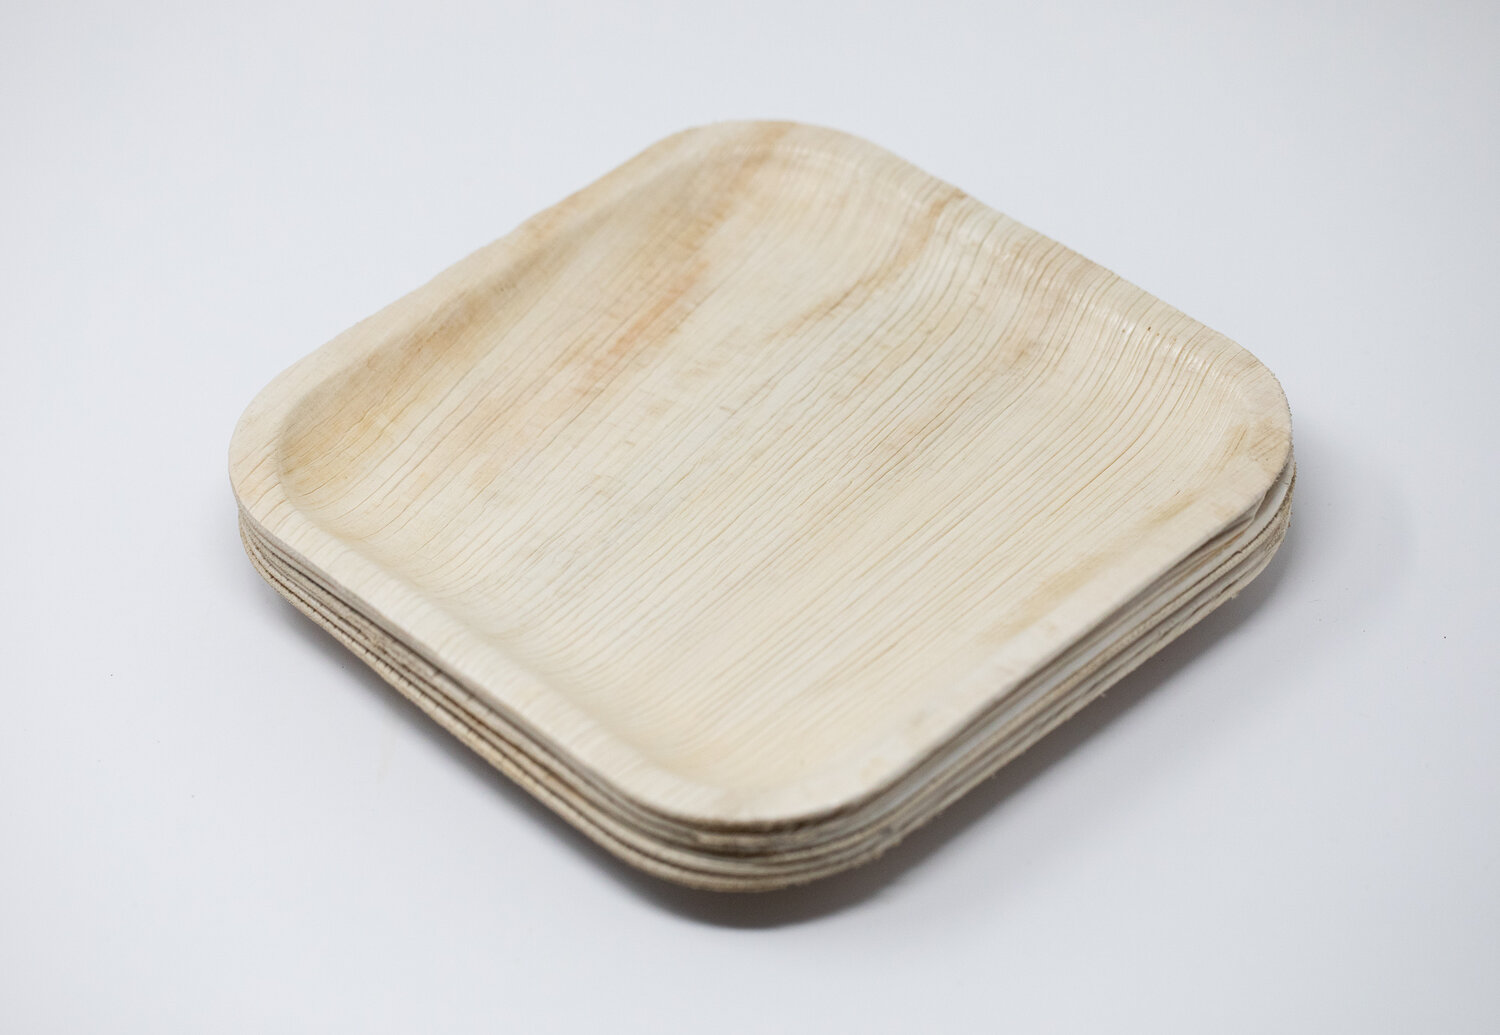 4 Square Plate The Reeden Company